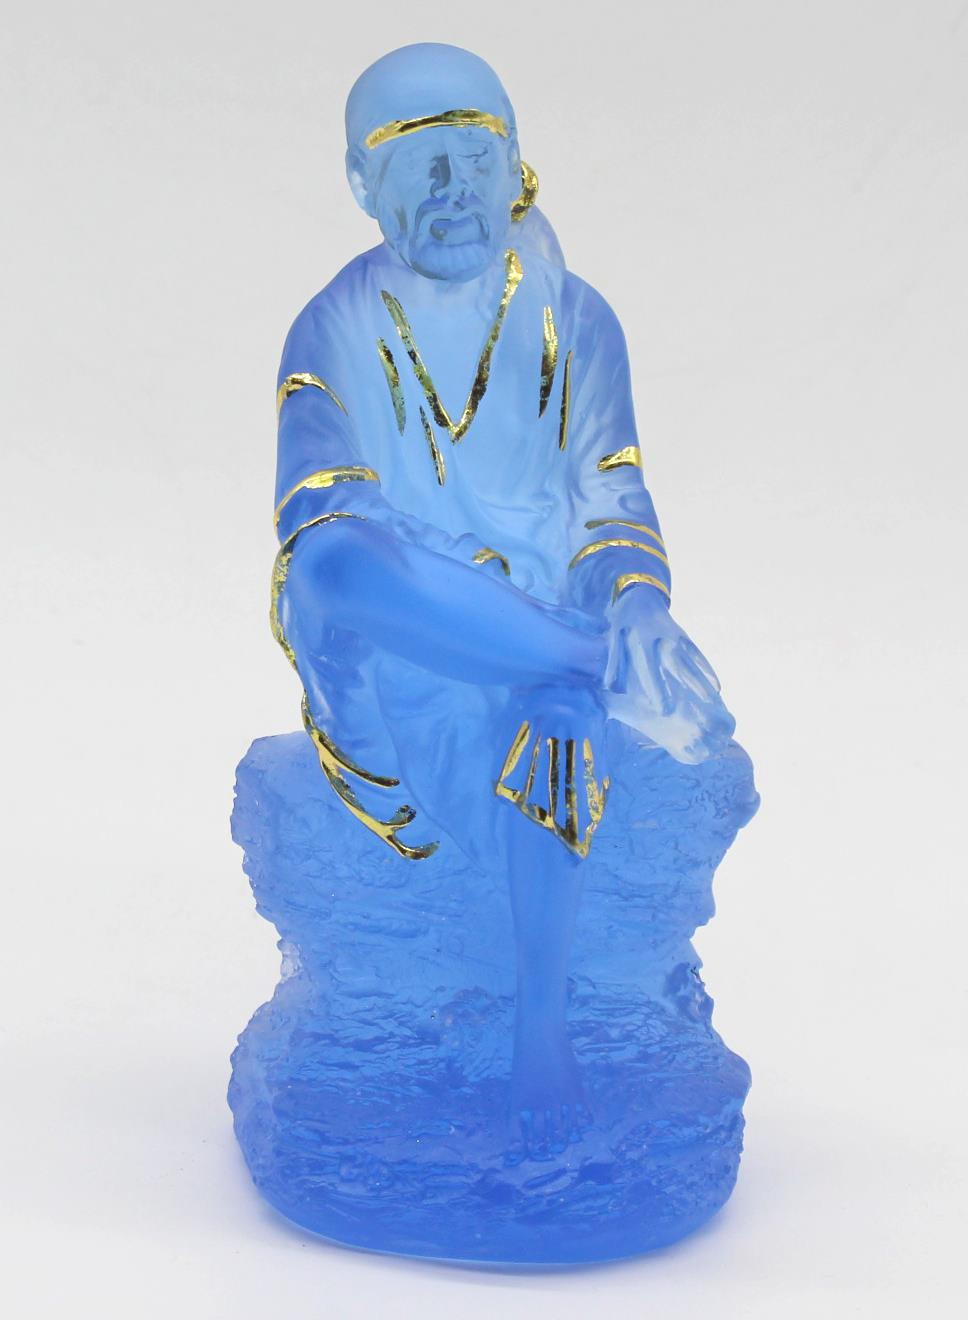 HINDU GOD STATUE BLUE COLOURED - FOR HOME DECORATION GIFT ITEM